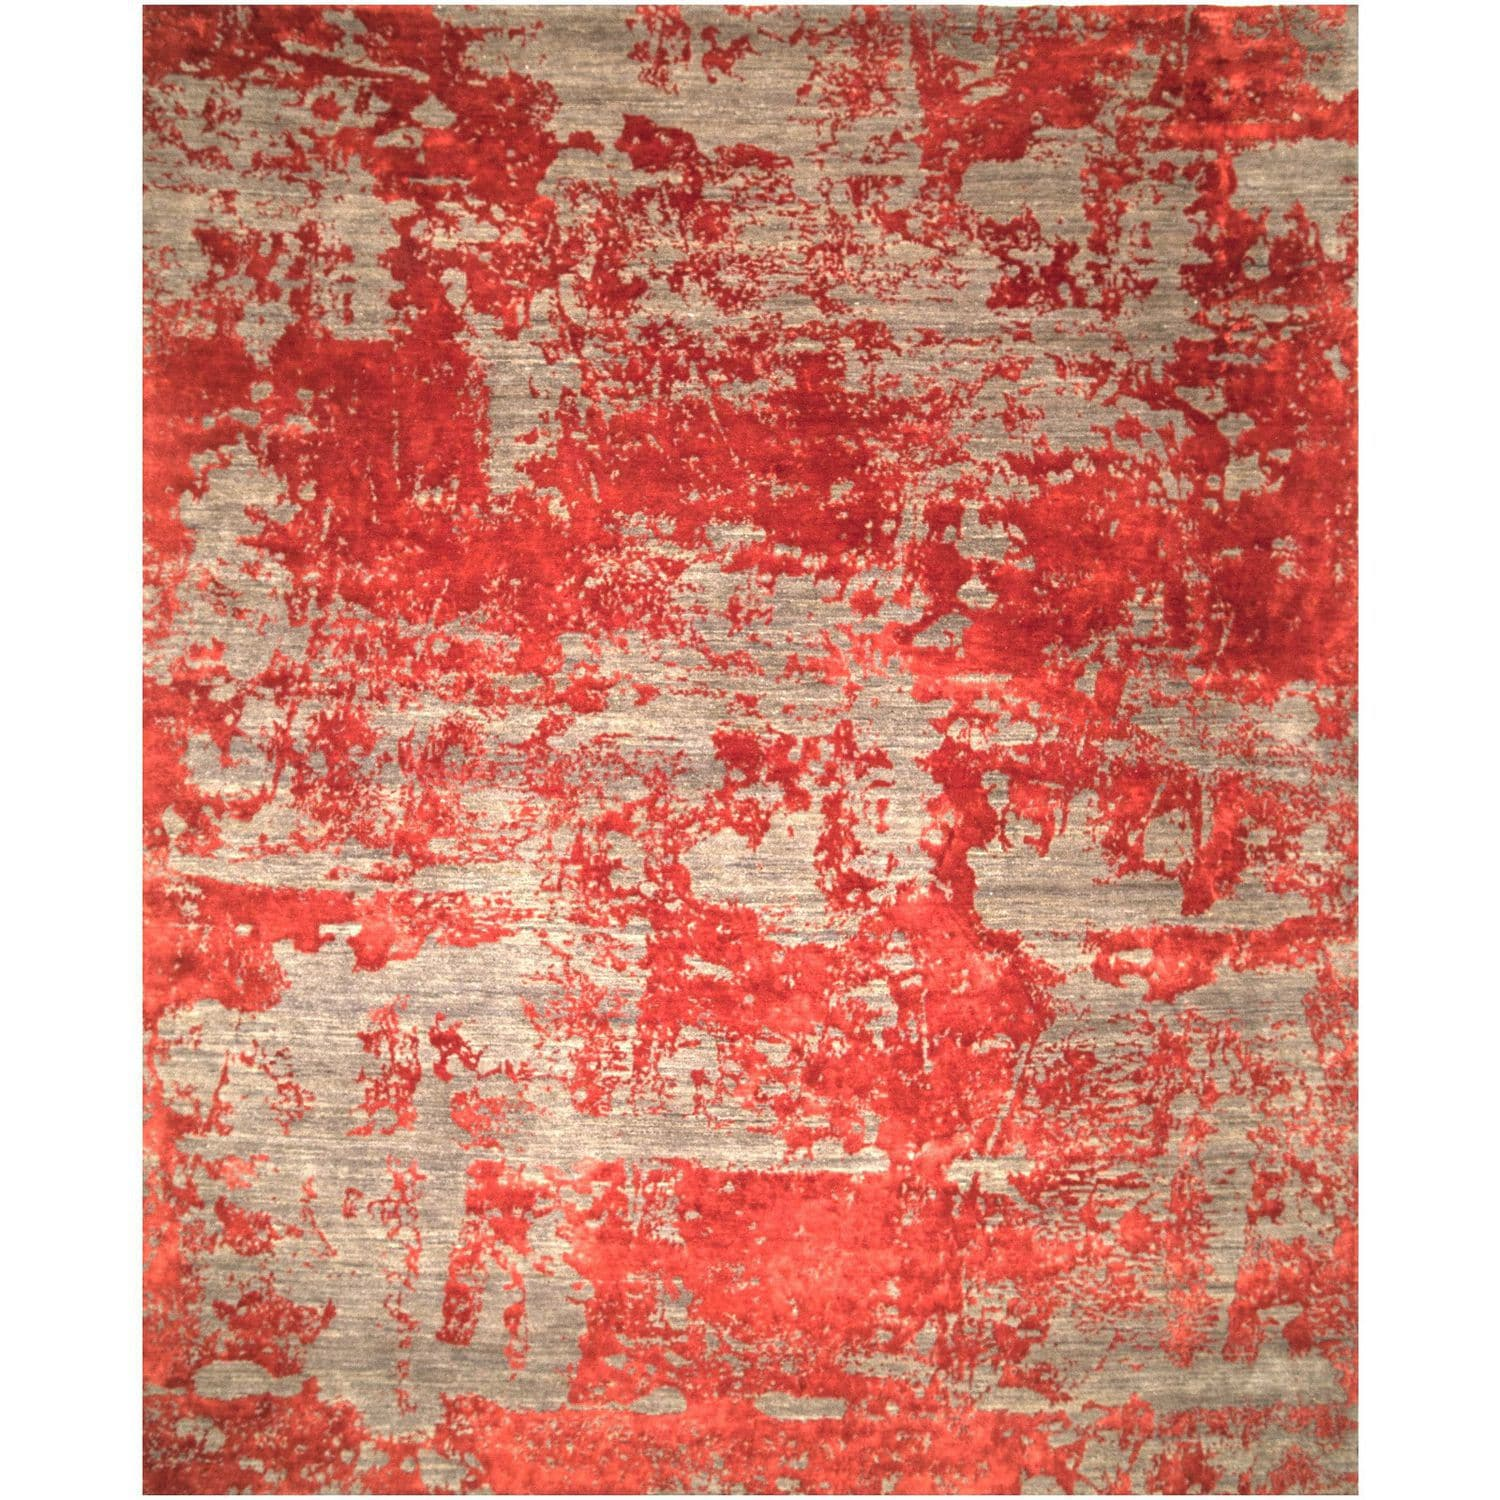 Contemporary Rug Patterned Wool Viscose Red Grey 14665